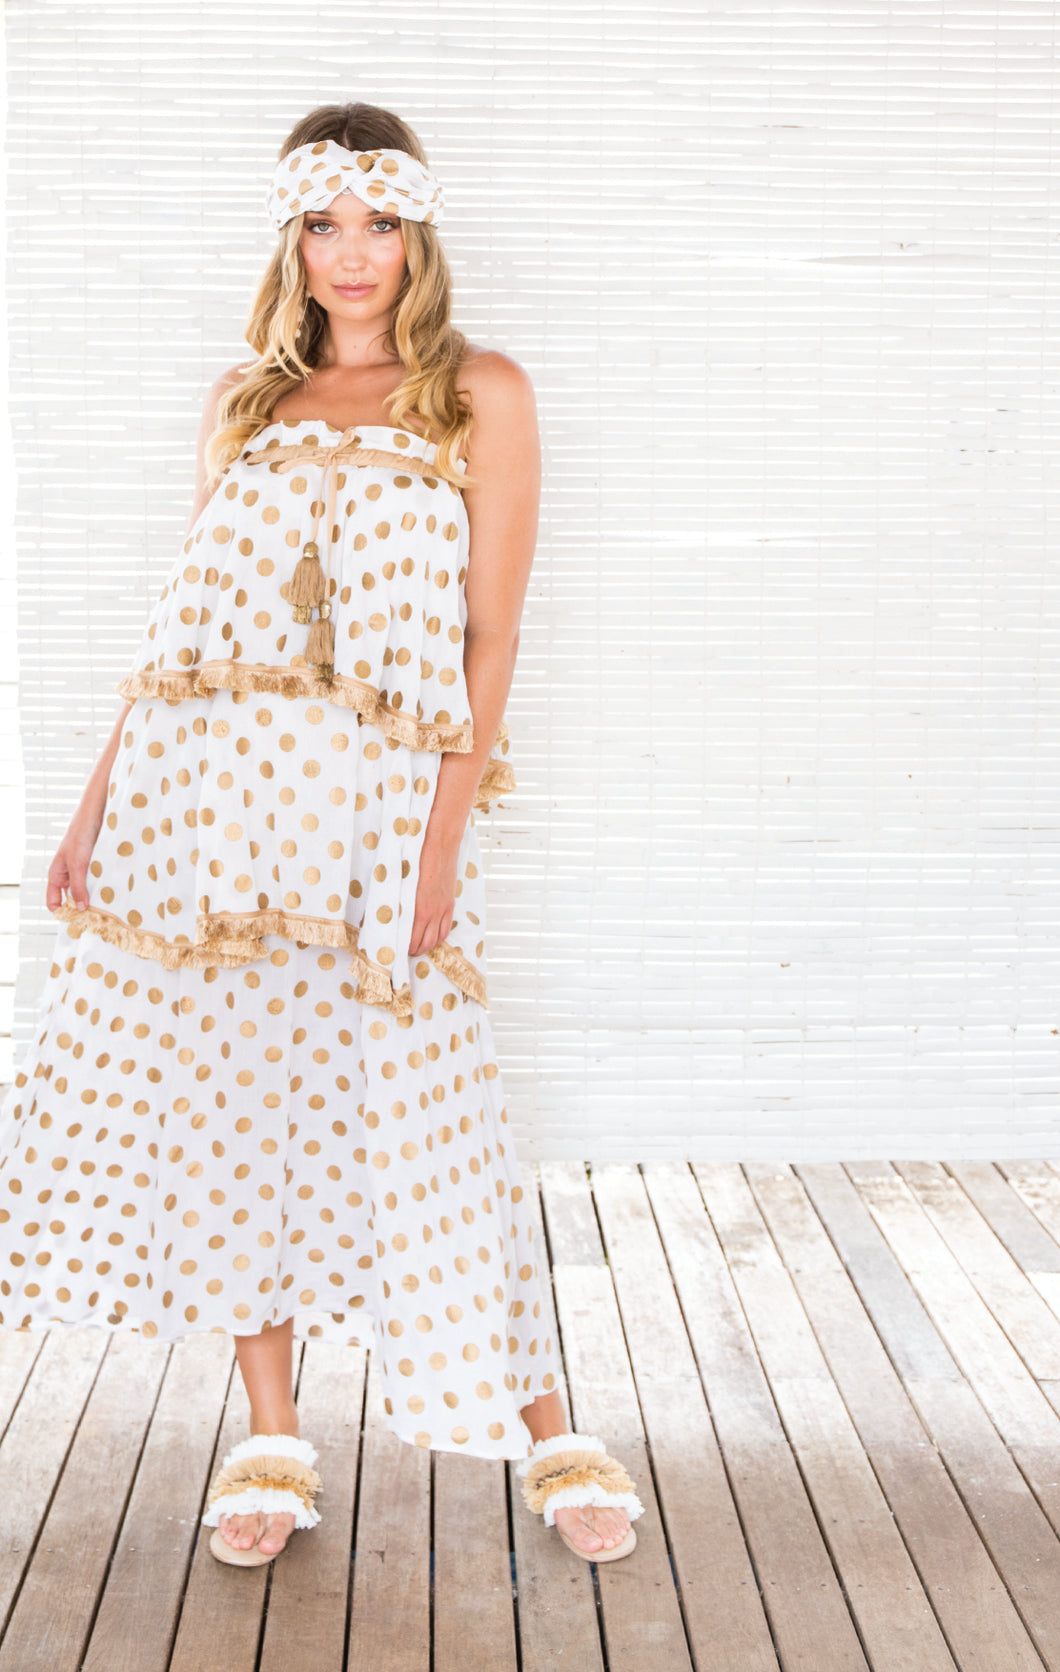 GOLD DOT 3 TIER DRESS